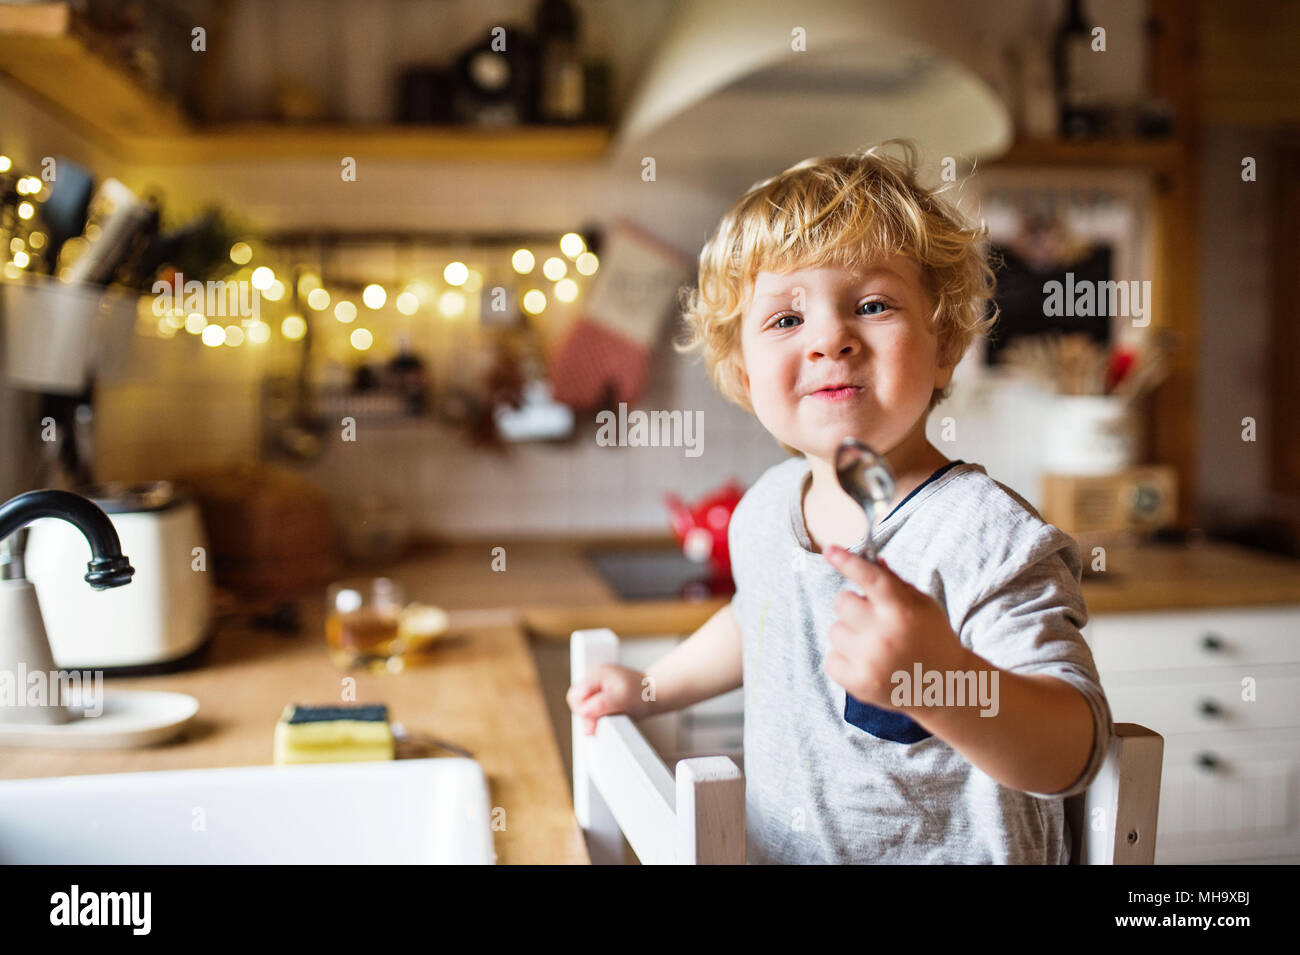 A toddler boy washing up the dishes. - Stock Image